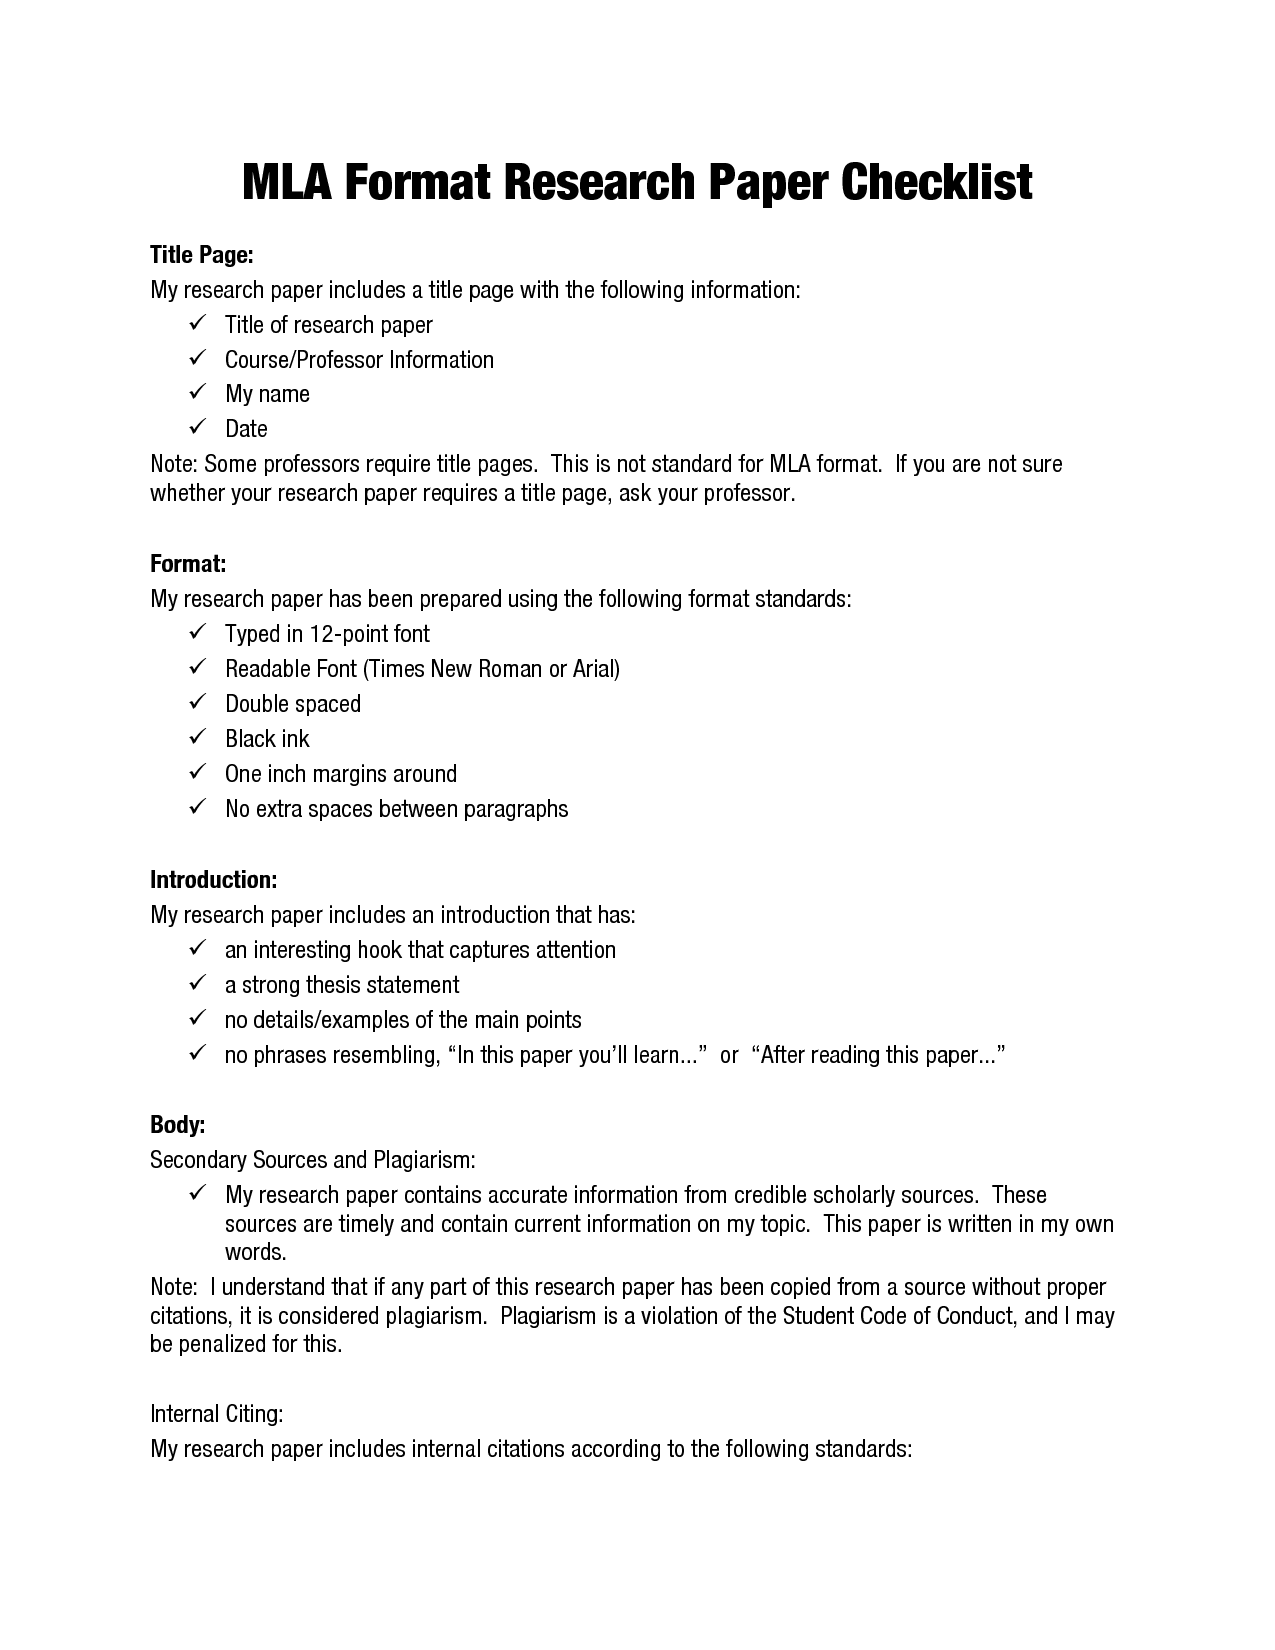 MLA Format Research Papers | MLA Format Research Paper ... on mla documentation, chicago format example essay, mla format works cited paper, mla essay heading, how long is a essay, apa format example essay, mla essay structure, narrative example essay, mla essay with citations examples, mla cover heet, proper heading for an essay, introduction example essay, example of a cited essay, turabian format example essay,